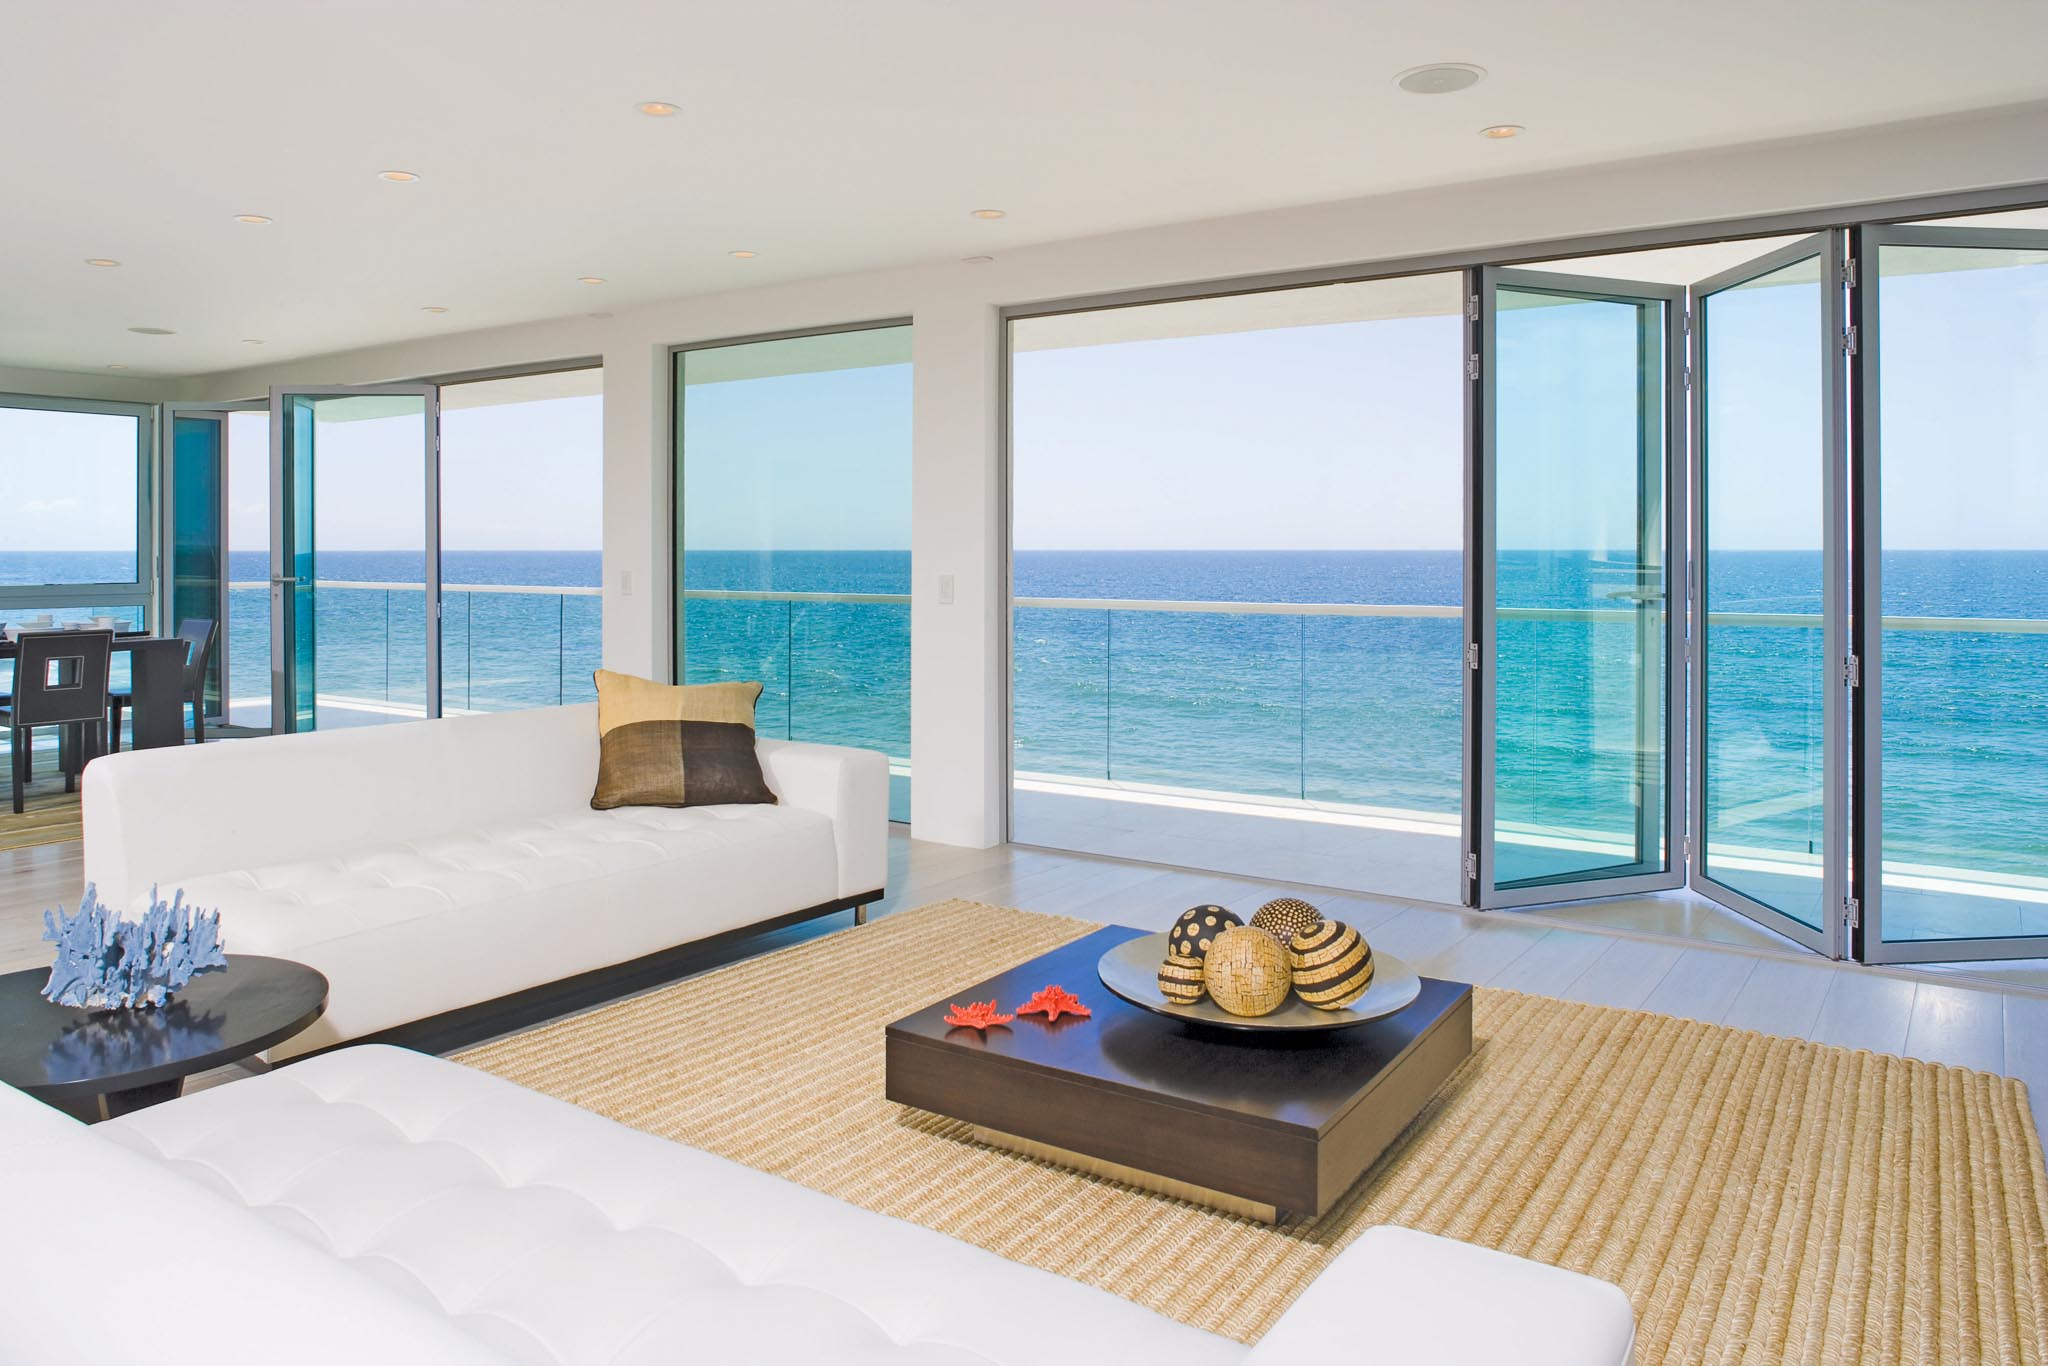 design inspiration in oceanfront home with opening glass walls